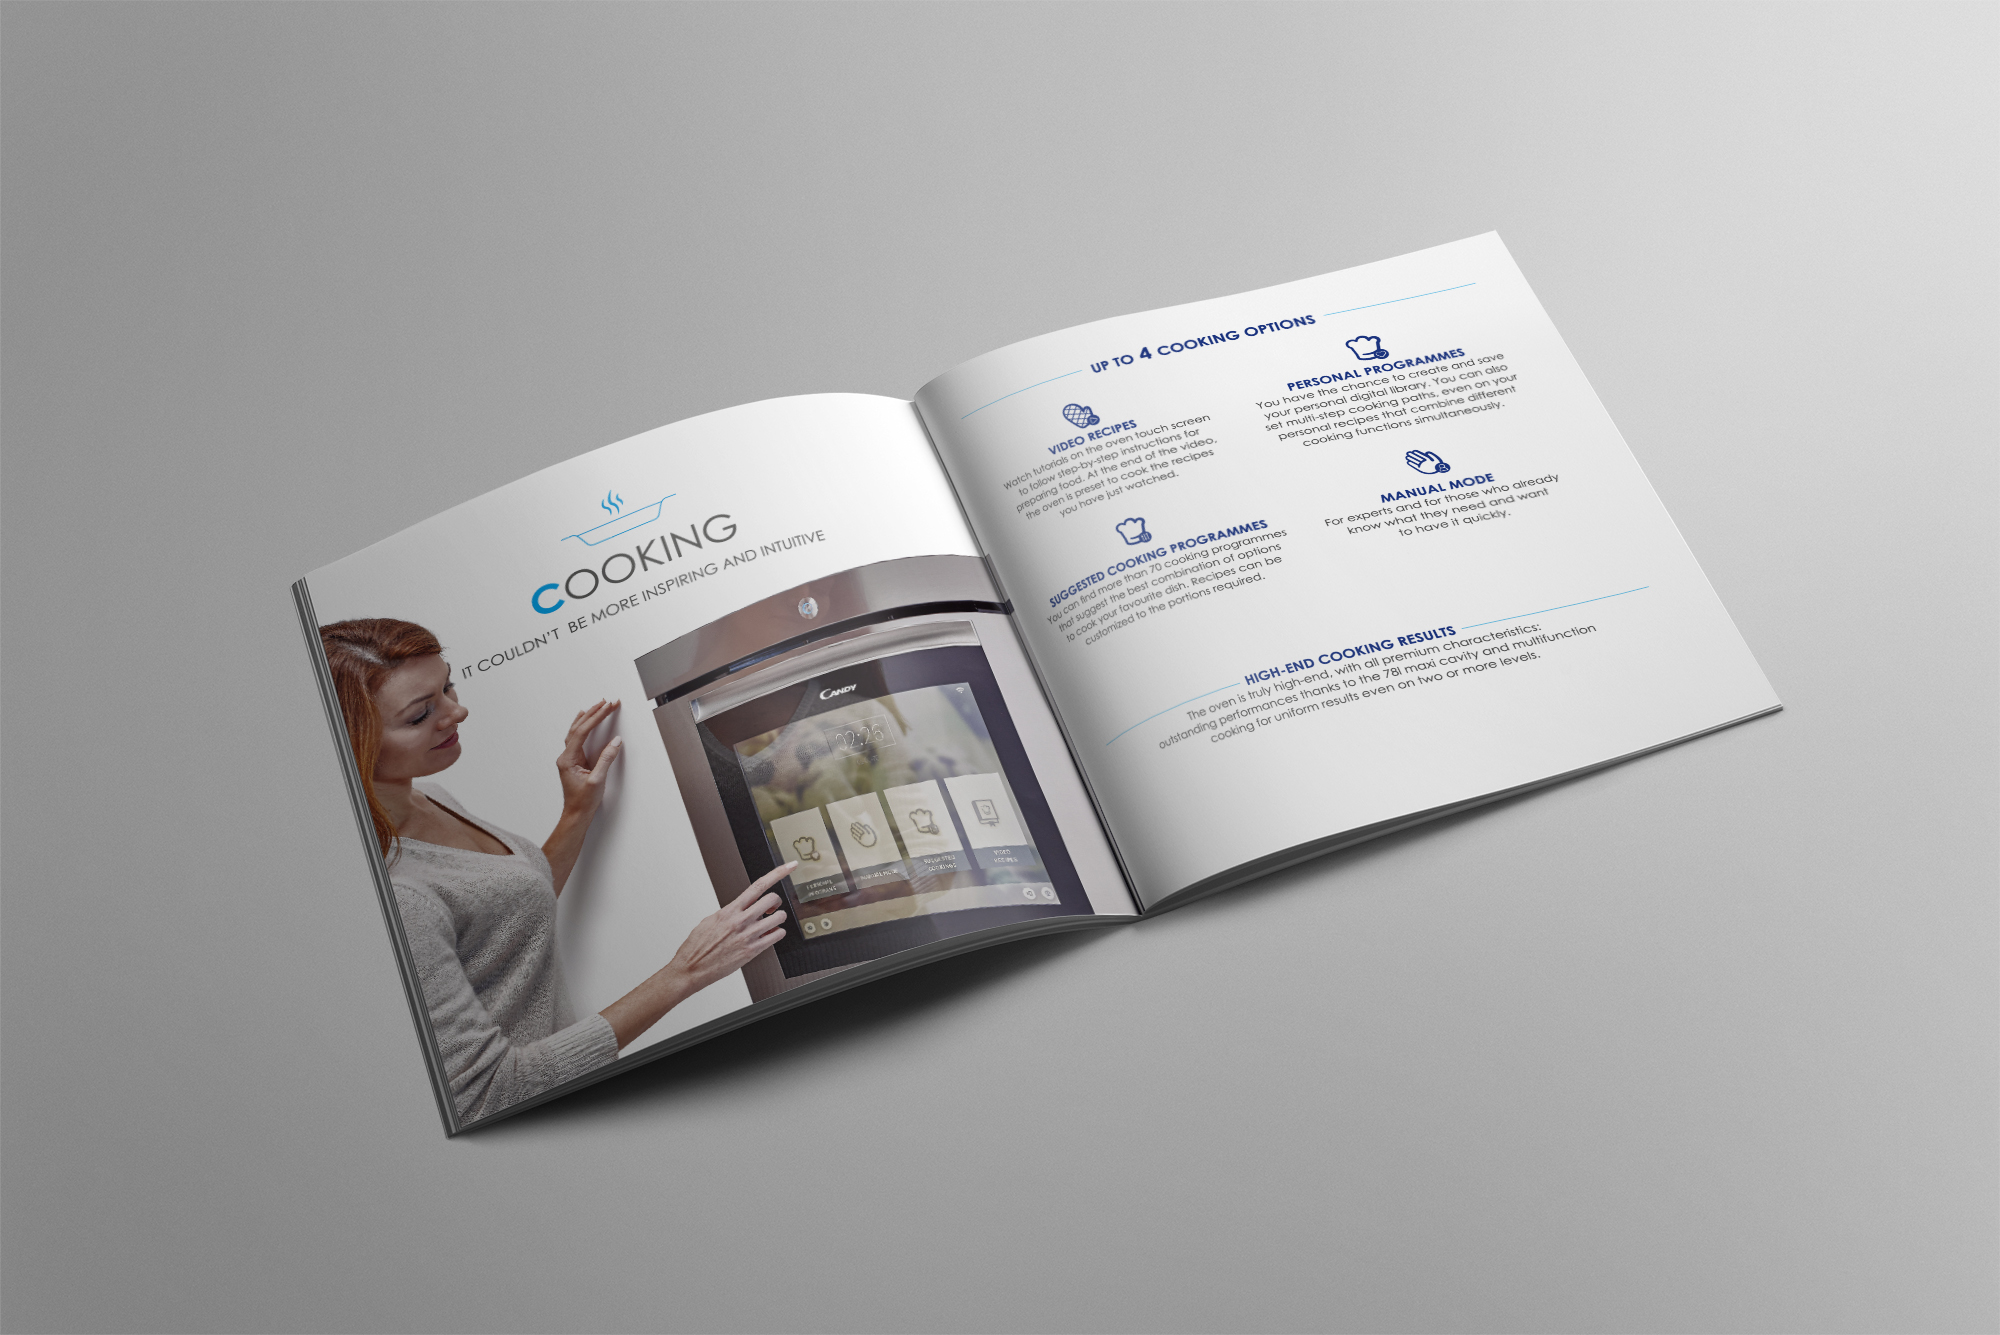 Brochure-Design-Advertising-Graphic-branding-online-marketing-illustration-poster-08